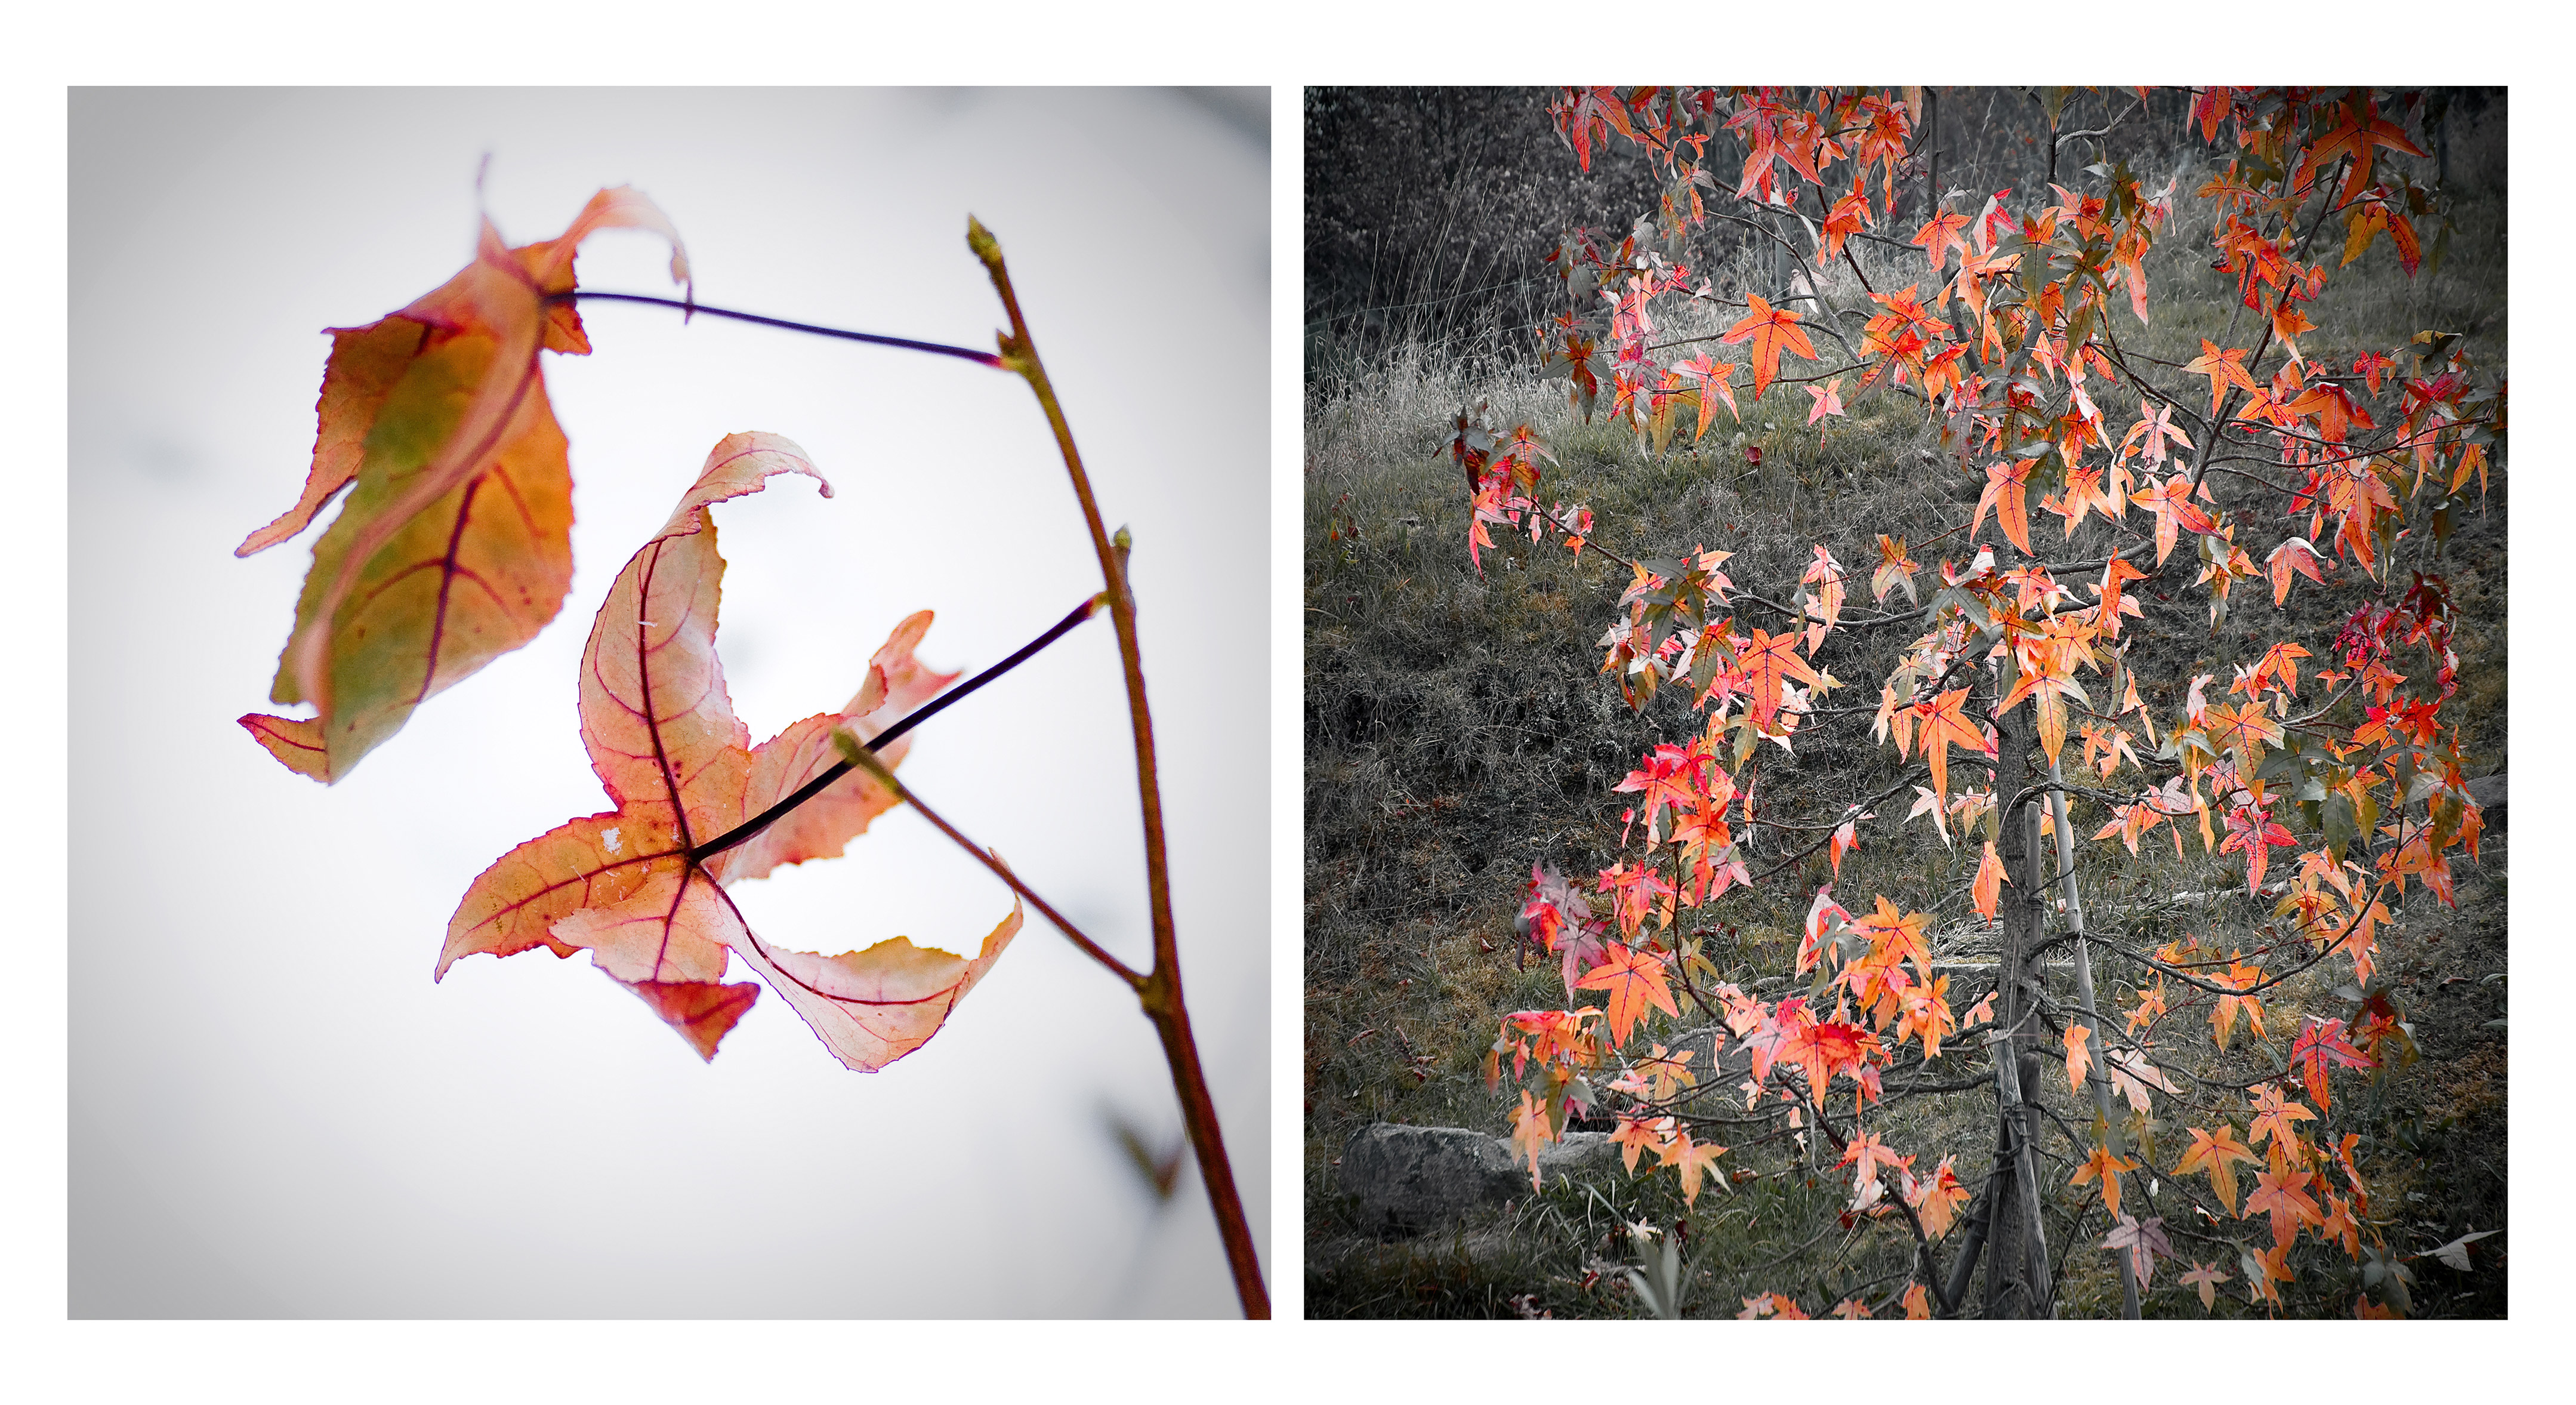 18_FEUILLE_ROUGE_AUTOMNE